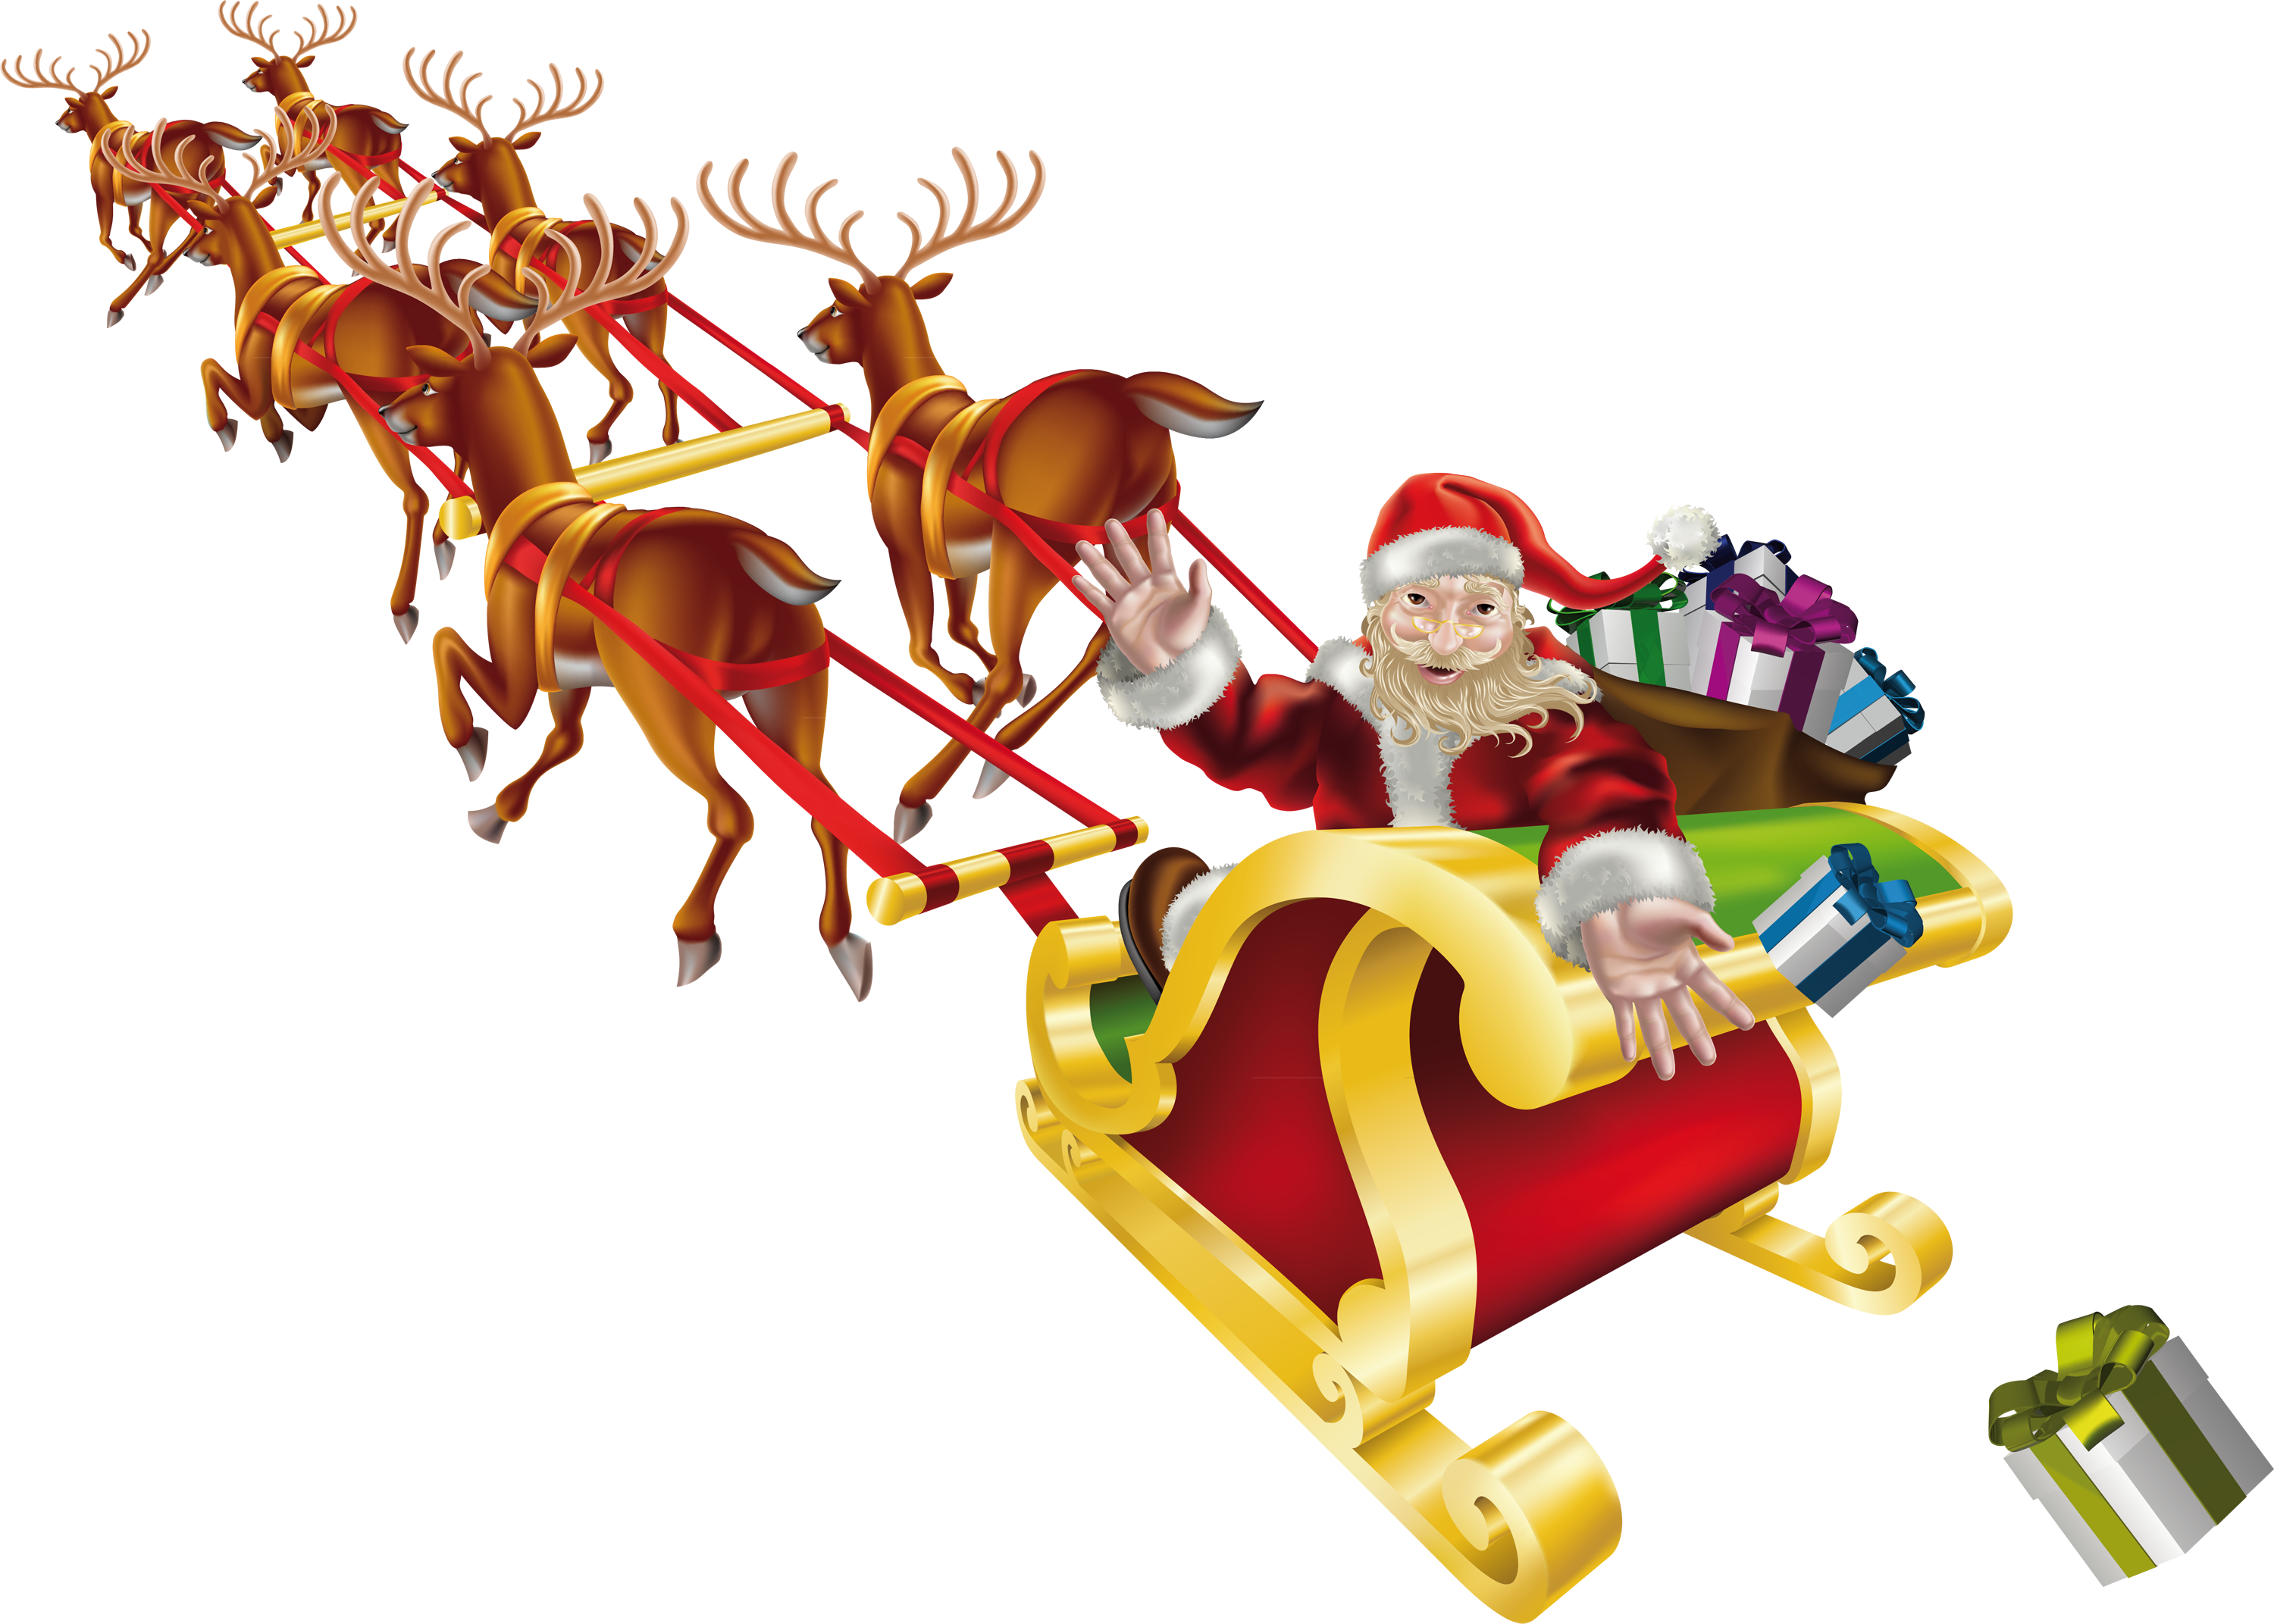 Santa sleigh PNG images free download.